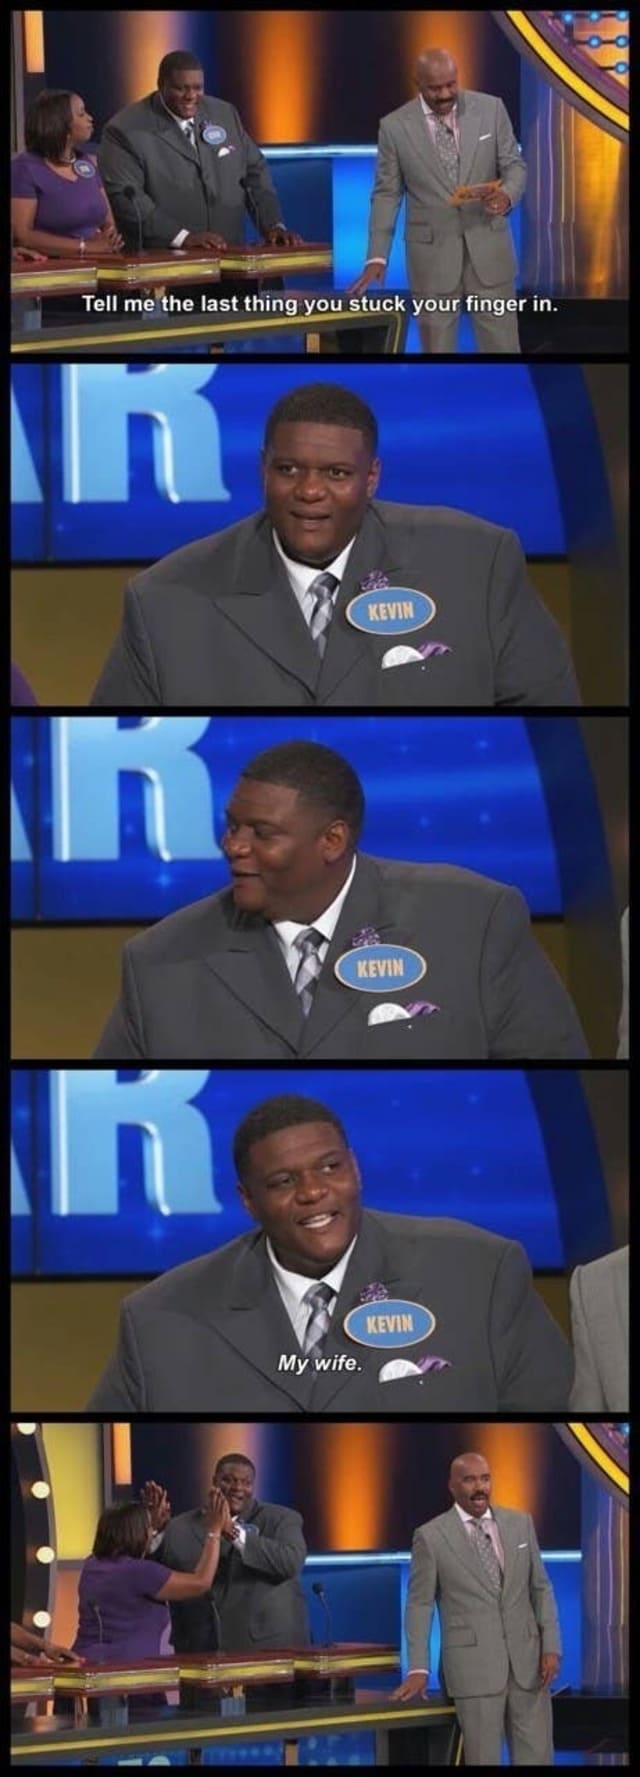 family feud questions, family feud questions funny, family feud questions fails, fail family feud, steve harvey family feud, best family feud questions